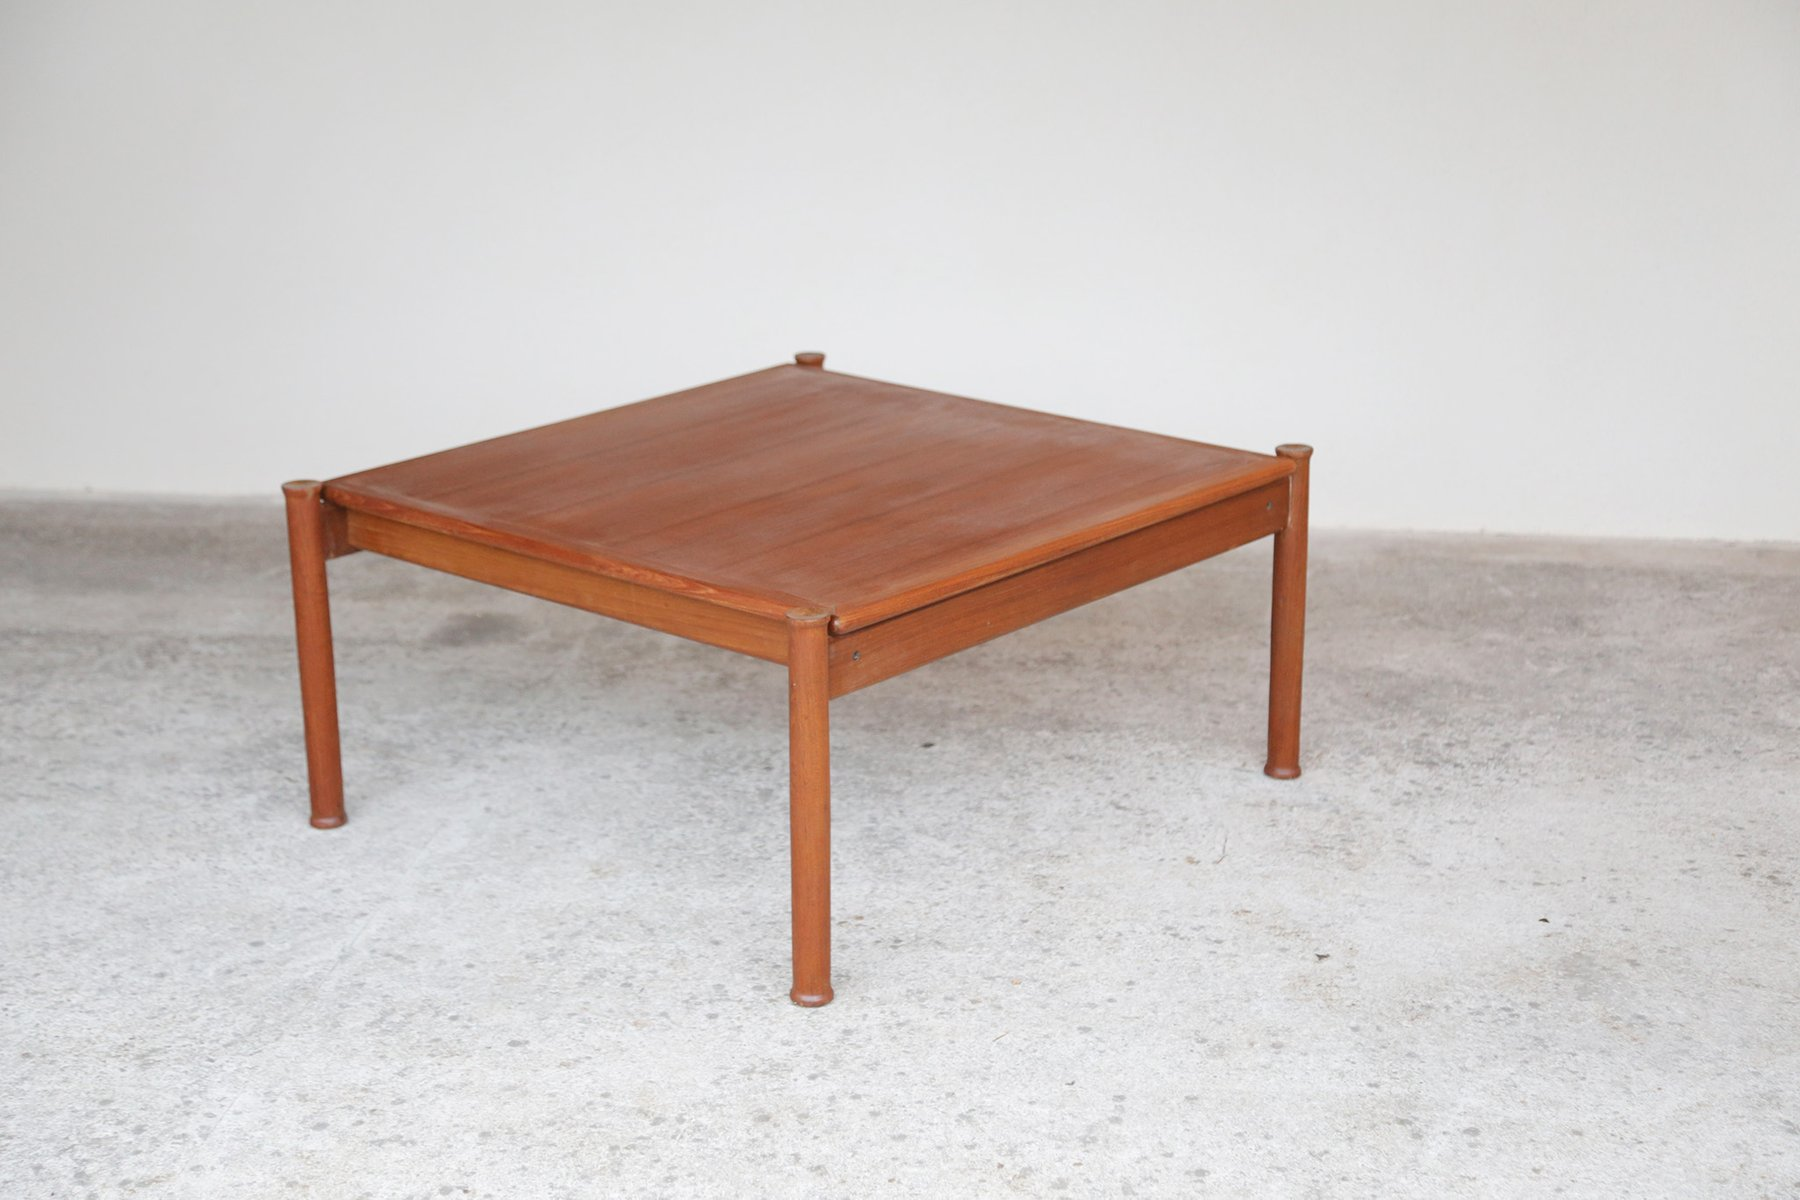 Vintage Scandinavian Teak Coffee Table For Sale At Pamono